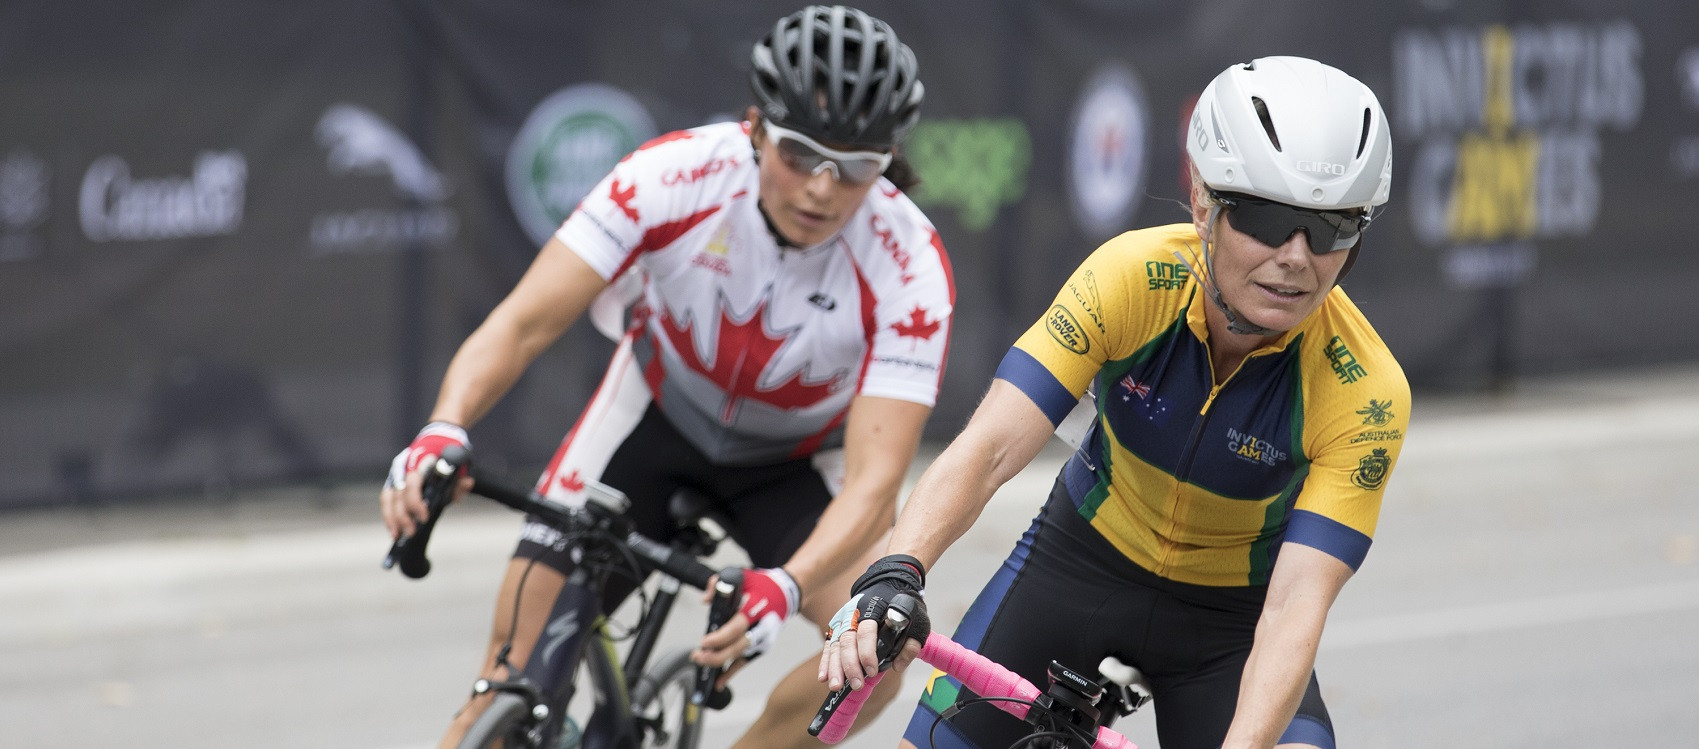 USMES and Invictus Games Foundation host virtual cycling events on Zwift